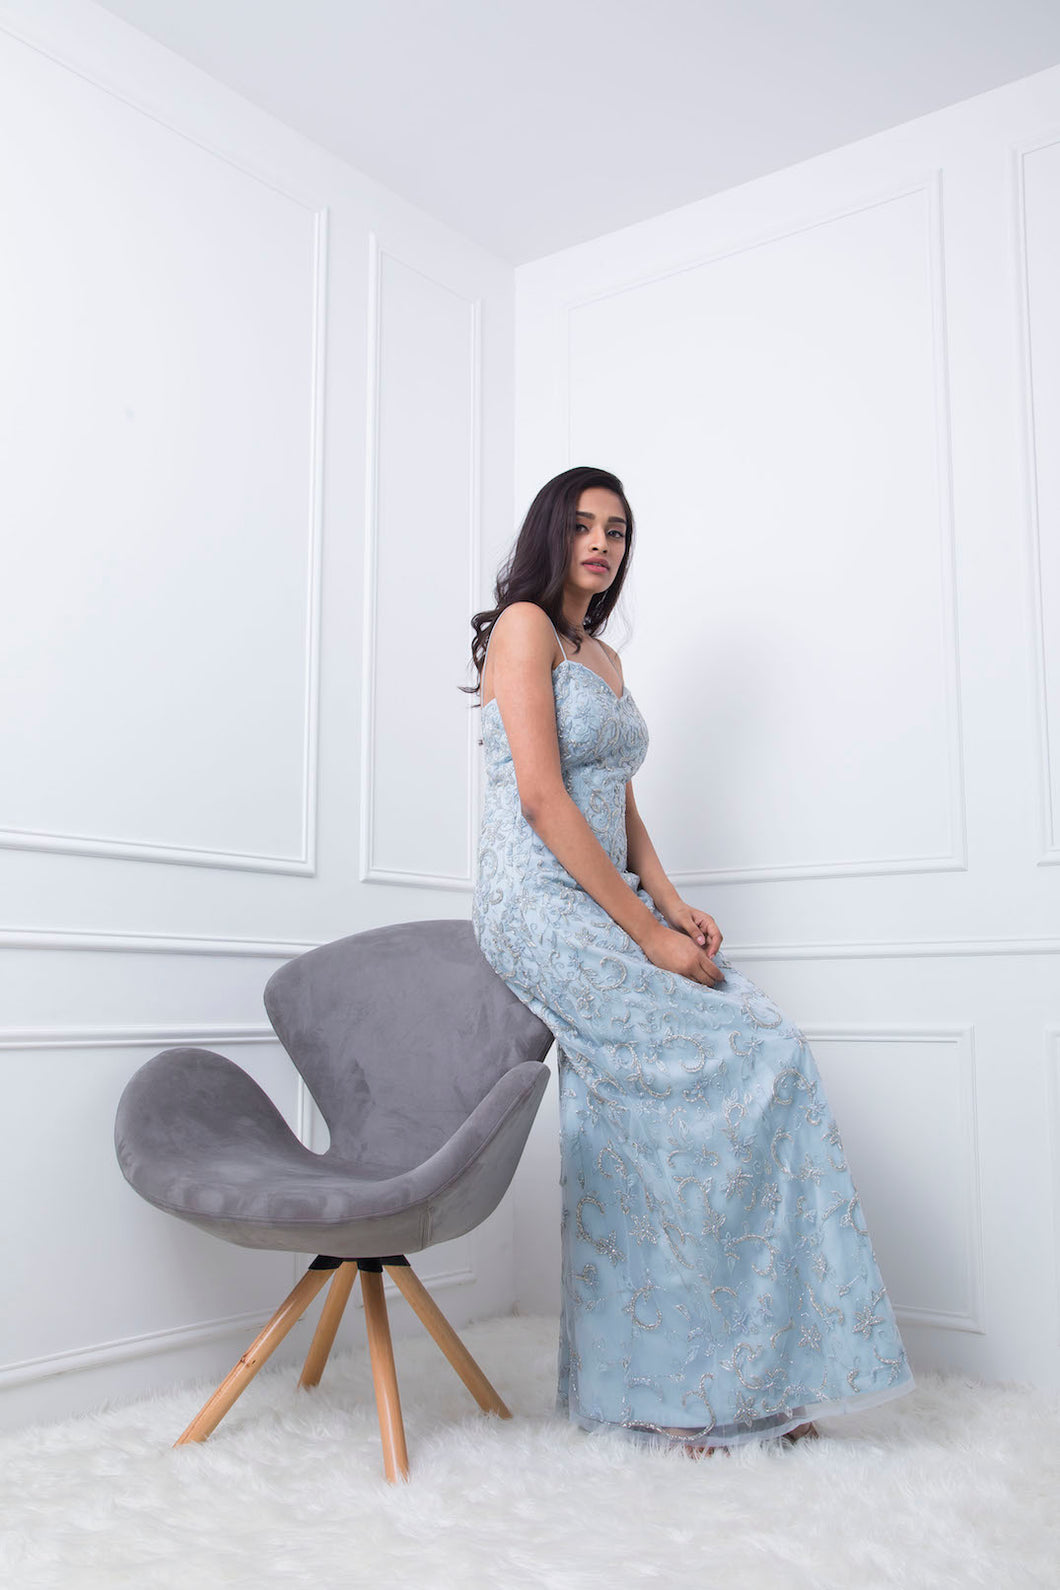 Pale Blue Floral Embellished Couture Gown